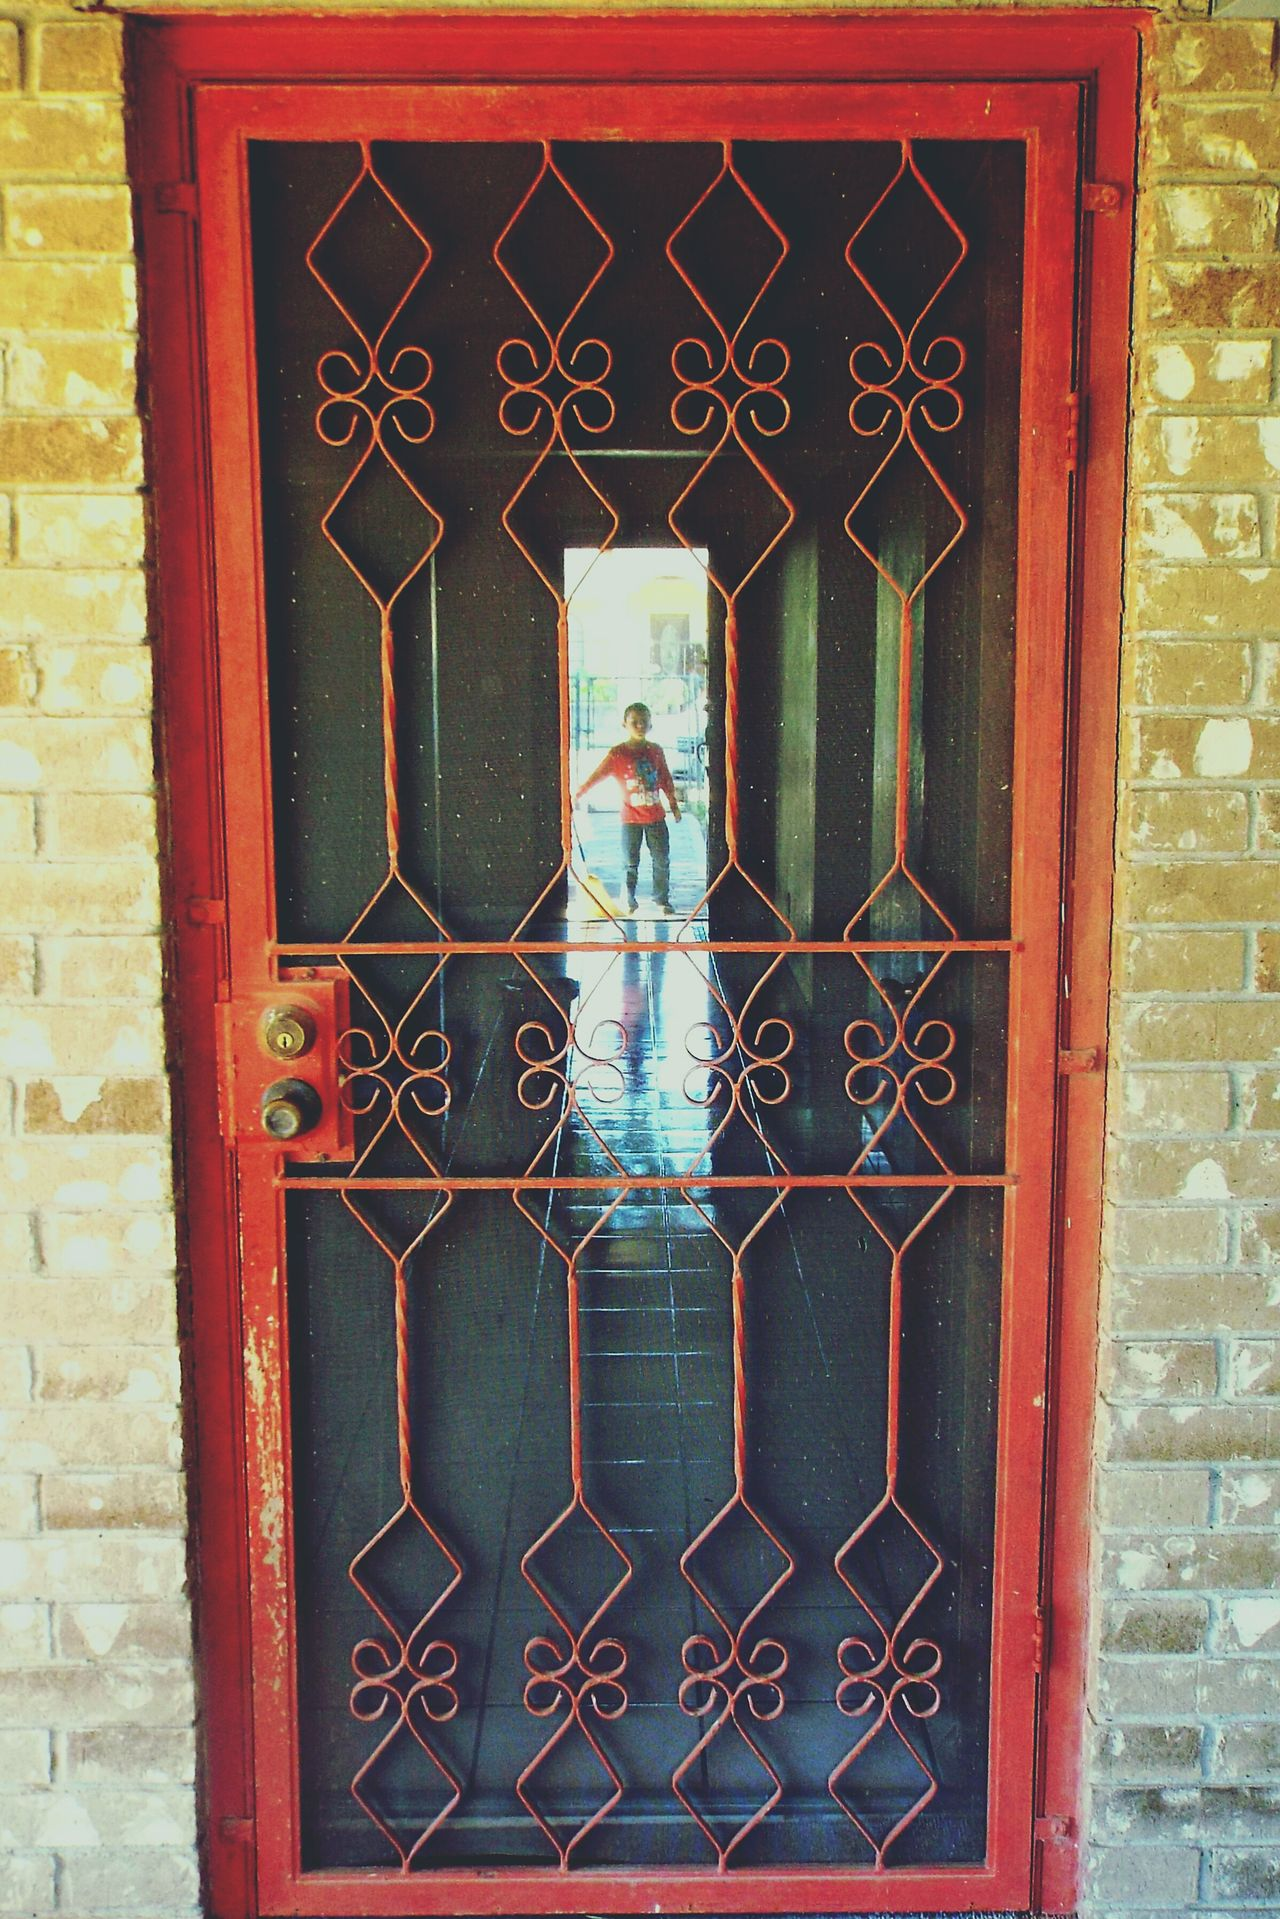 Red Door Old House Moving Out Childhood Home Child Doors Last Day Metal Door Boy At Door Boy Childhood Memories Empty House Reflection Childhood Tile Reflection Telling Stories Differently Home Is Where The Art Is